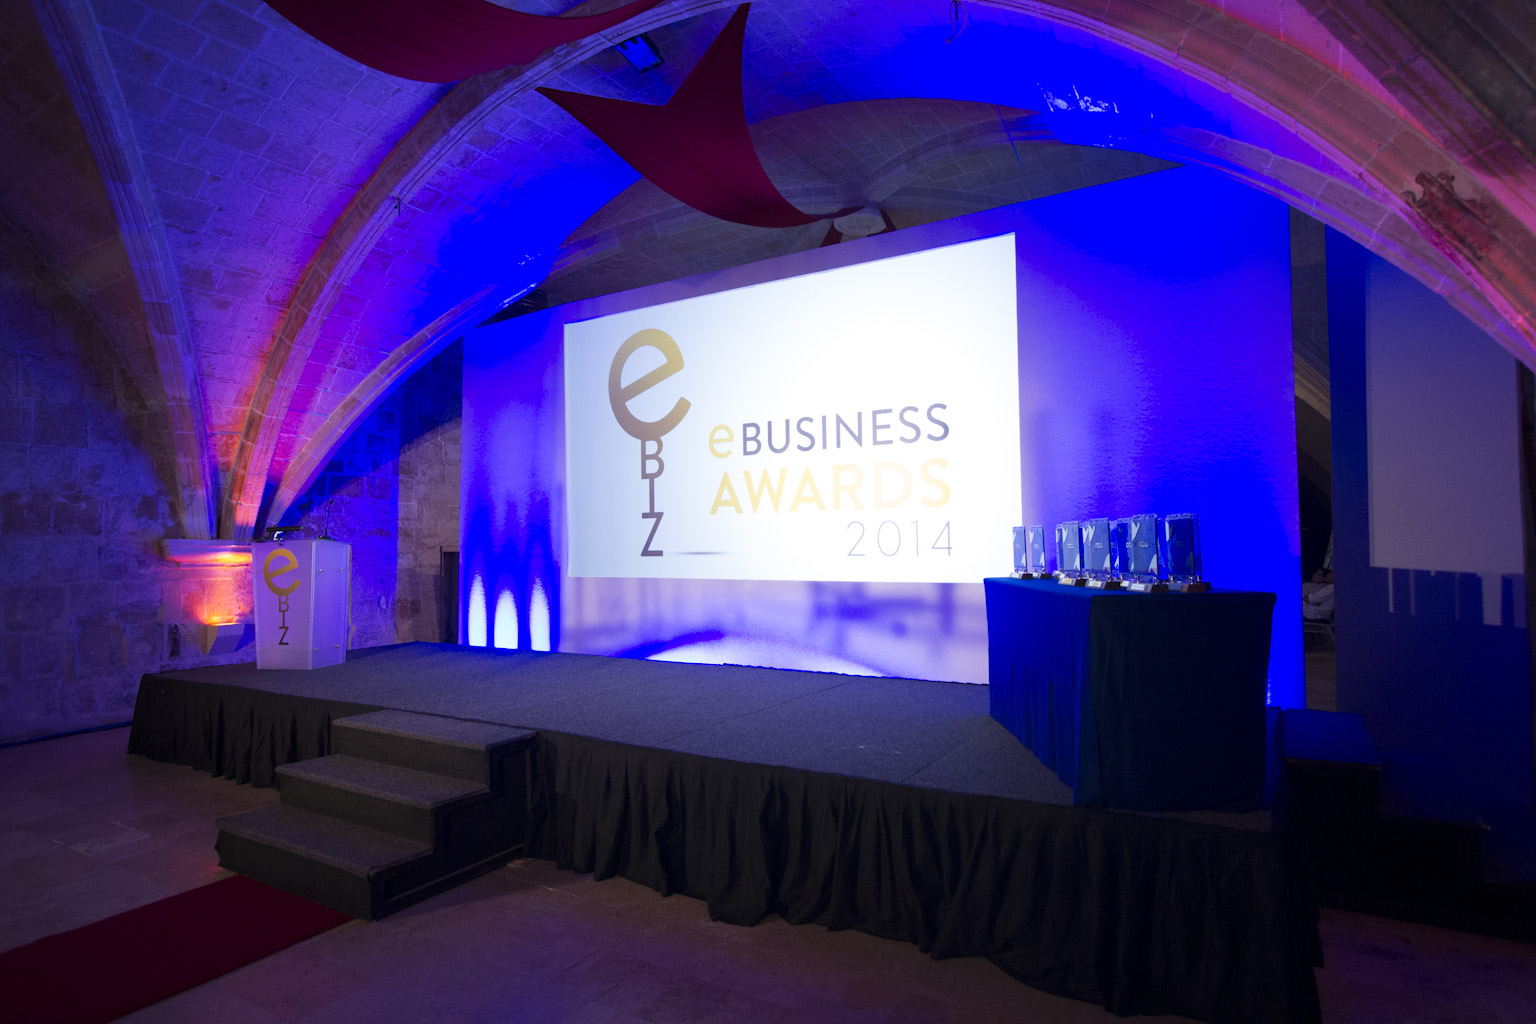 We're at the MCA eBusiness Awards 2014